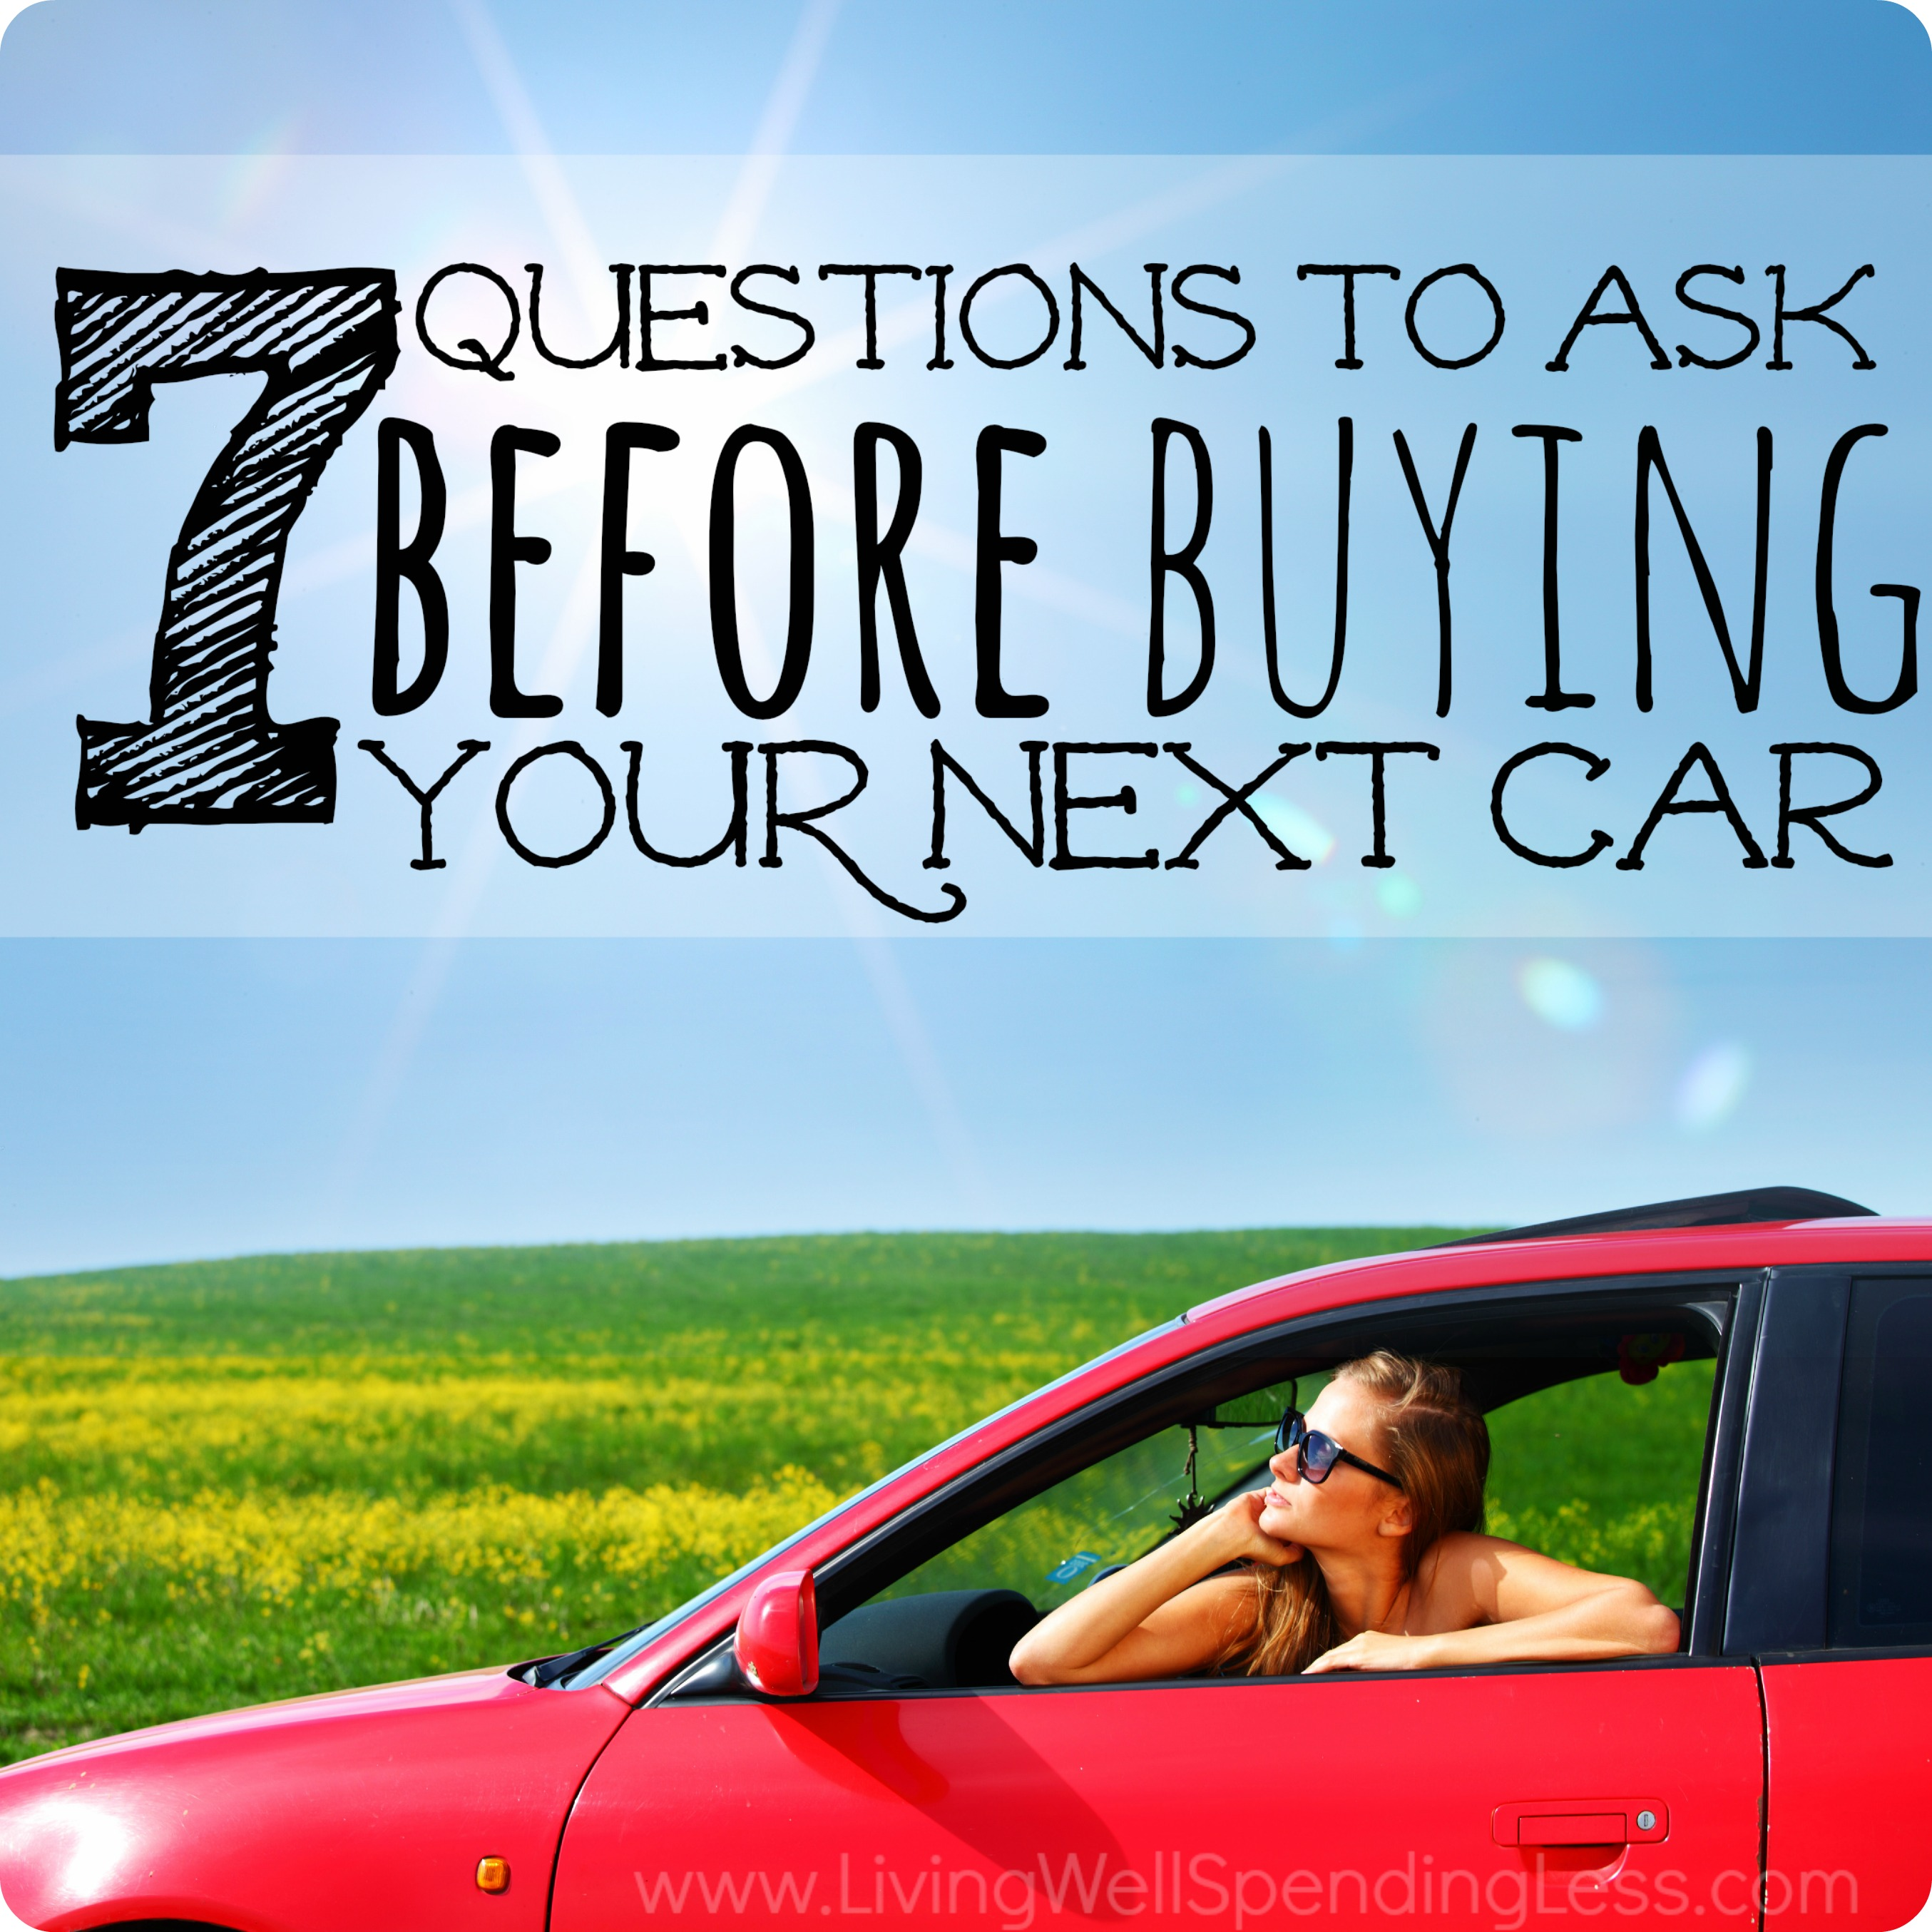 7 Questions To Ask Before Buying Your Next Car